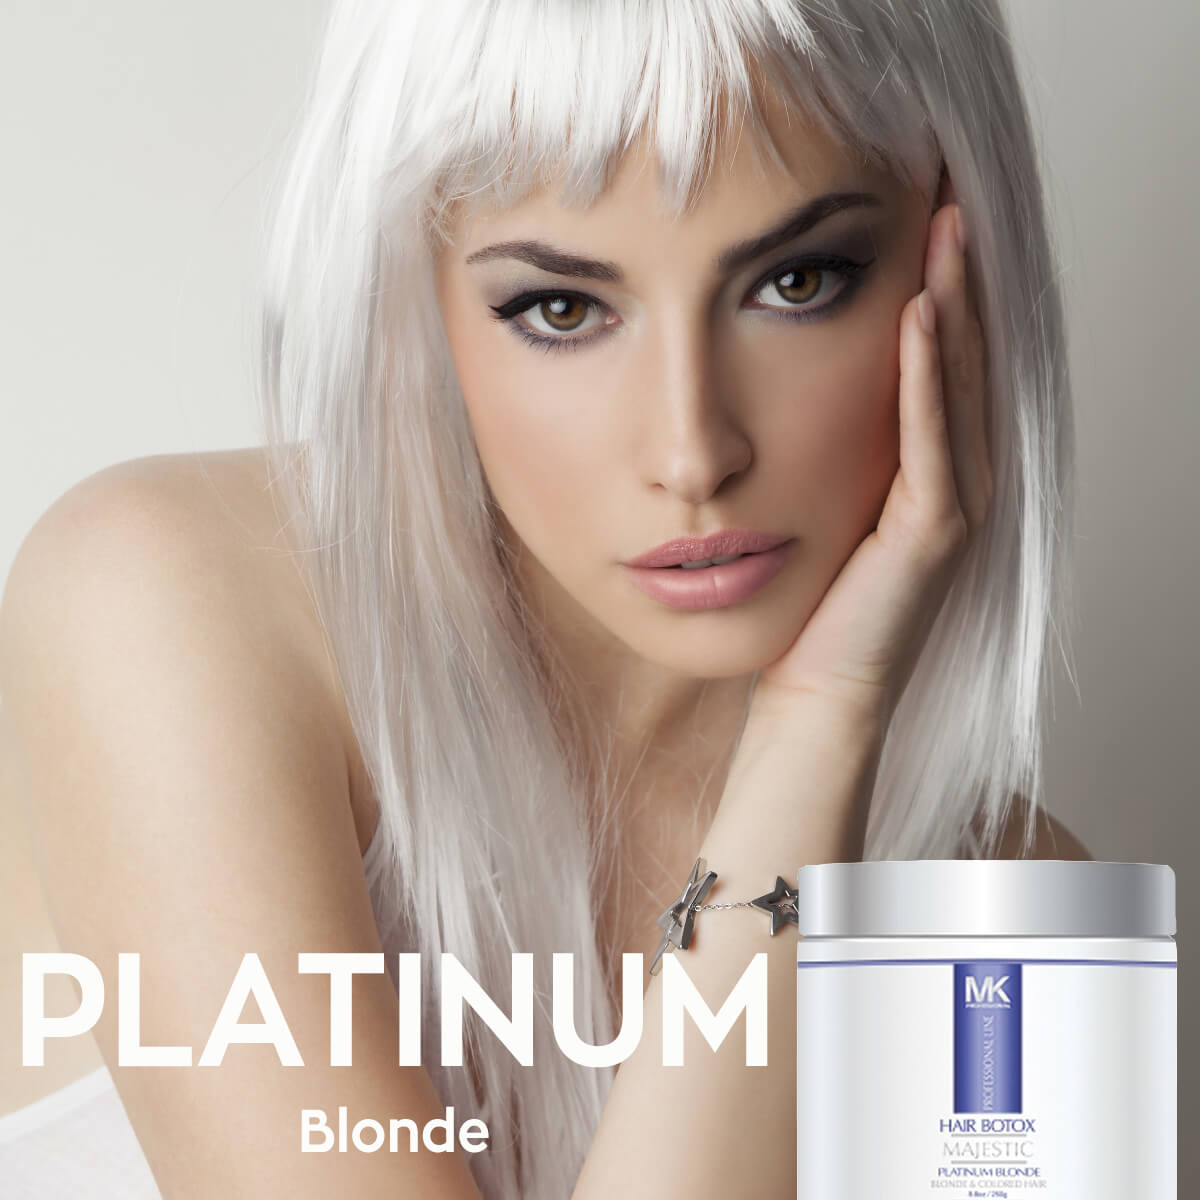 Blondes Rejoice The New Majestic Keratin Platinum Blonde